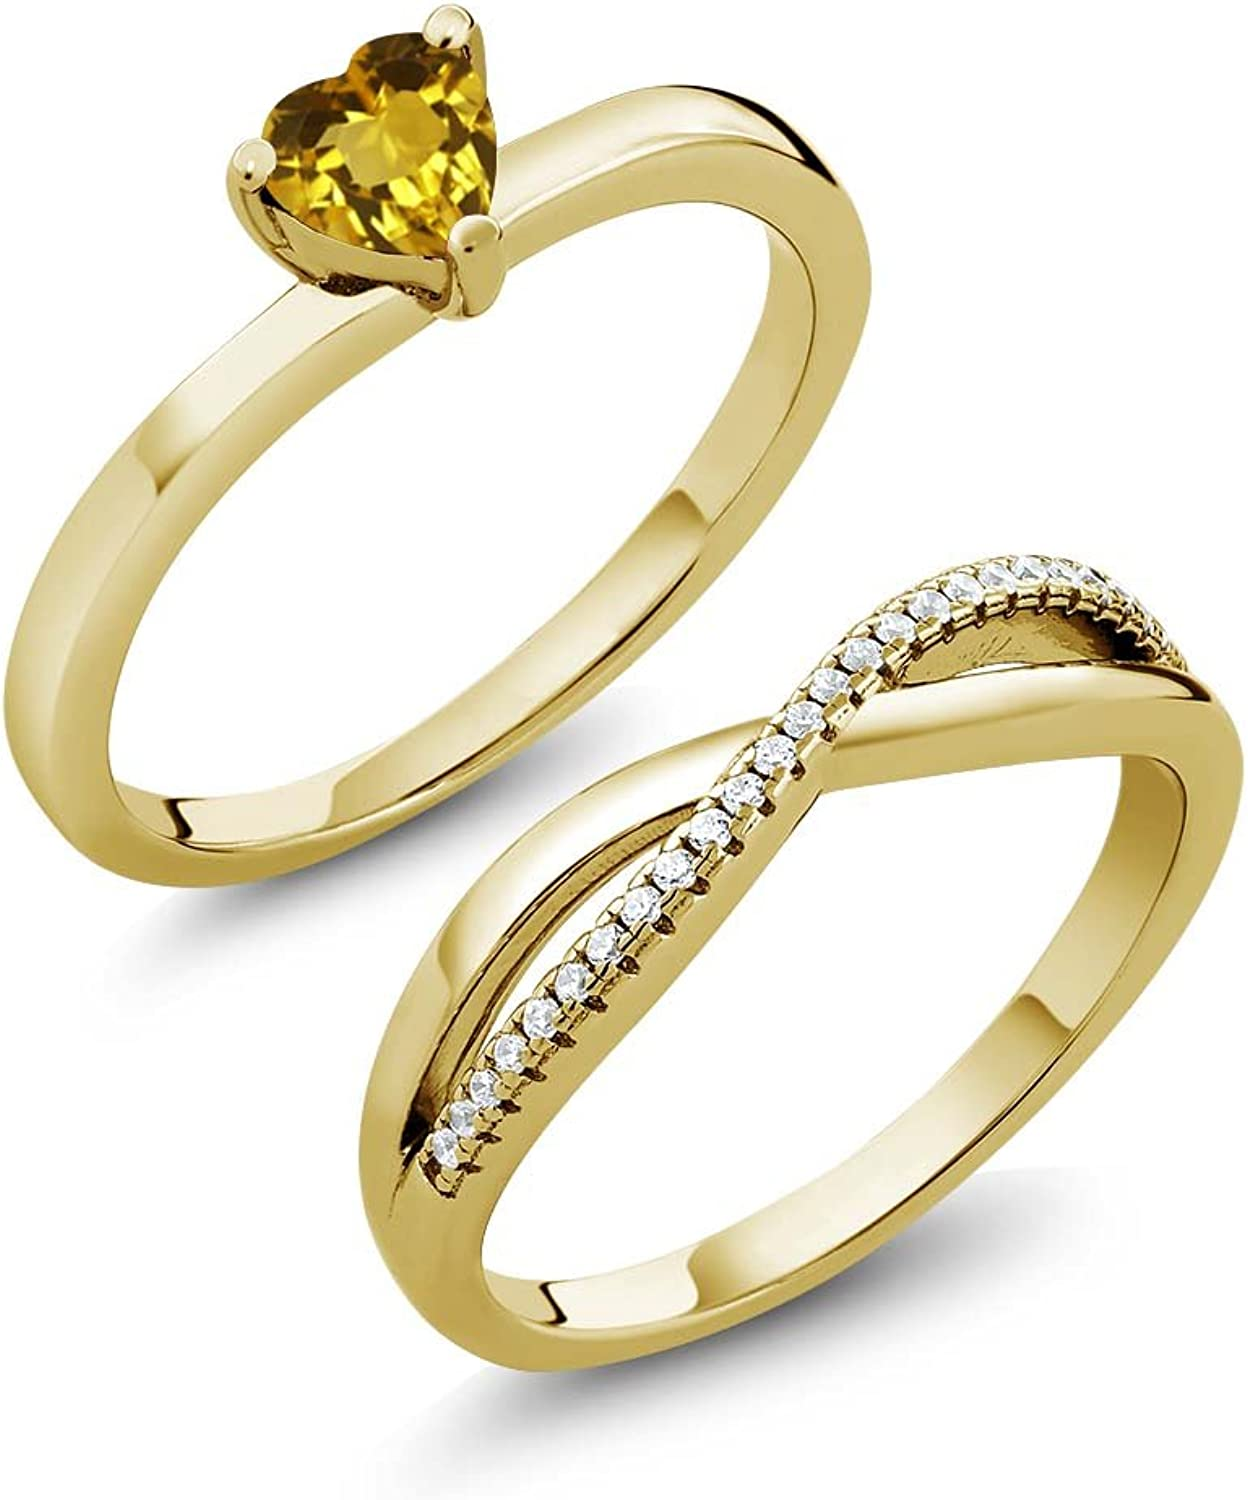 0.76 Ct Heart Shape Citrine 18K Yellow gold Plated Silver Engagement Wedding Ring Set